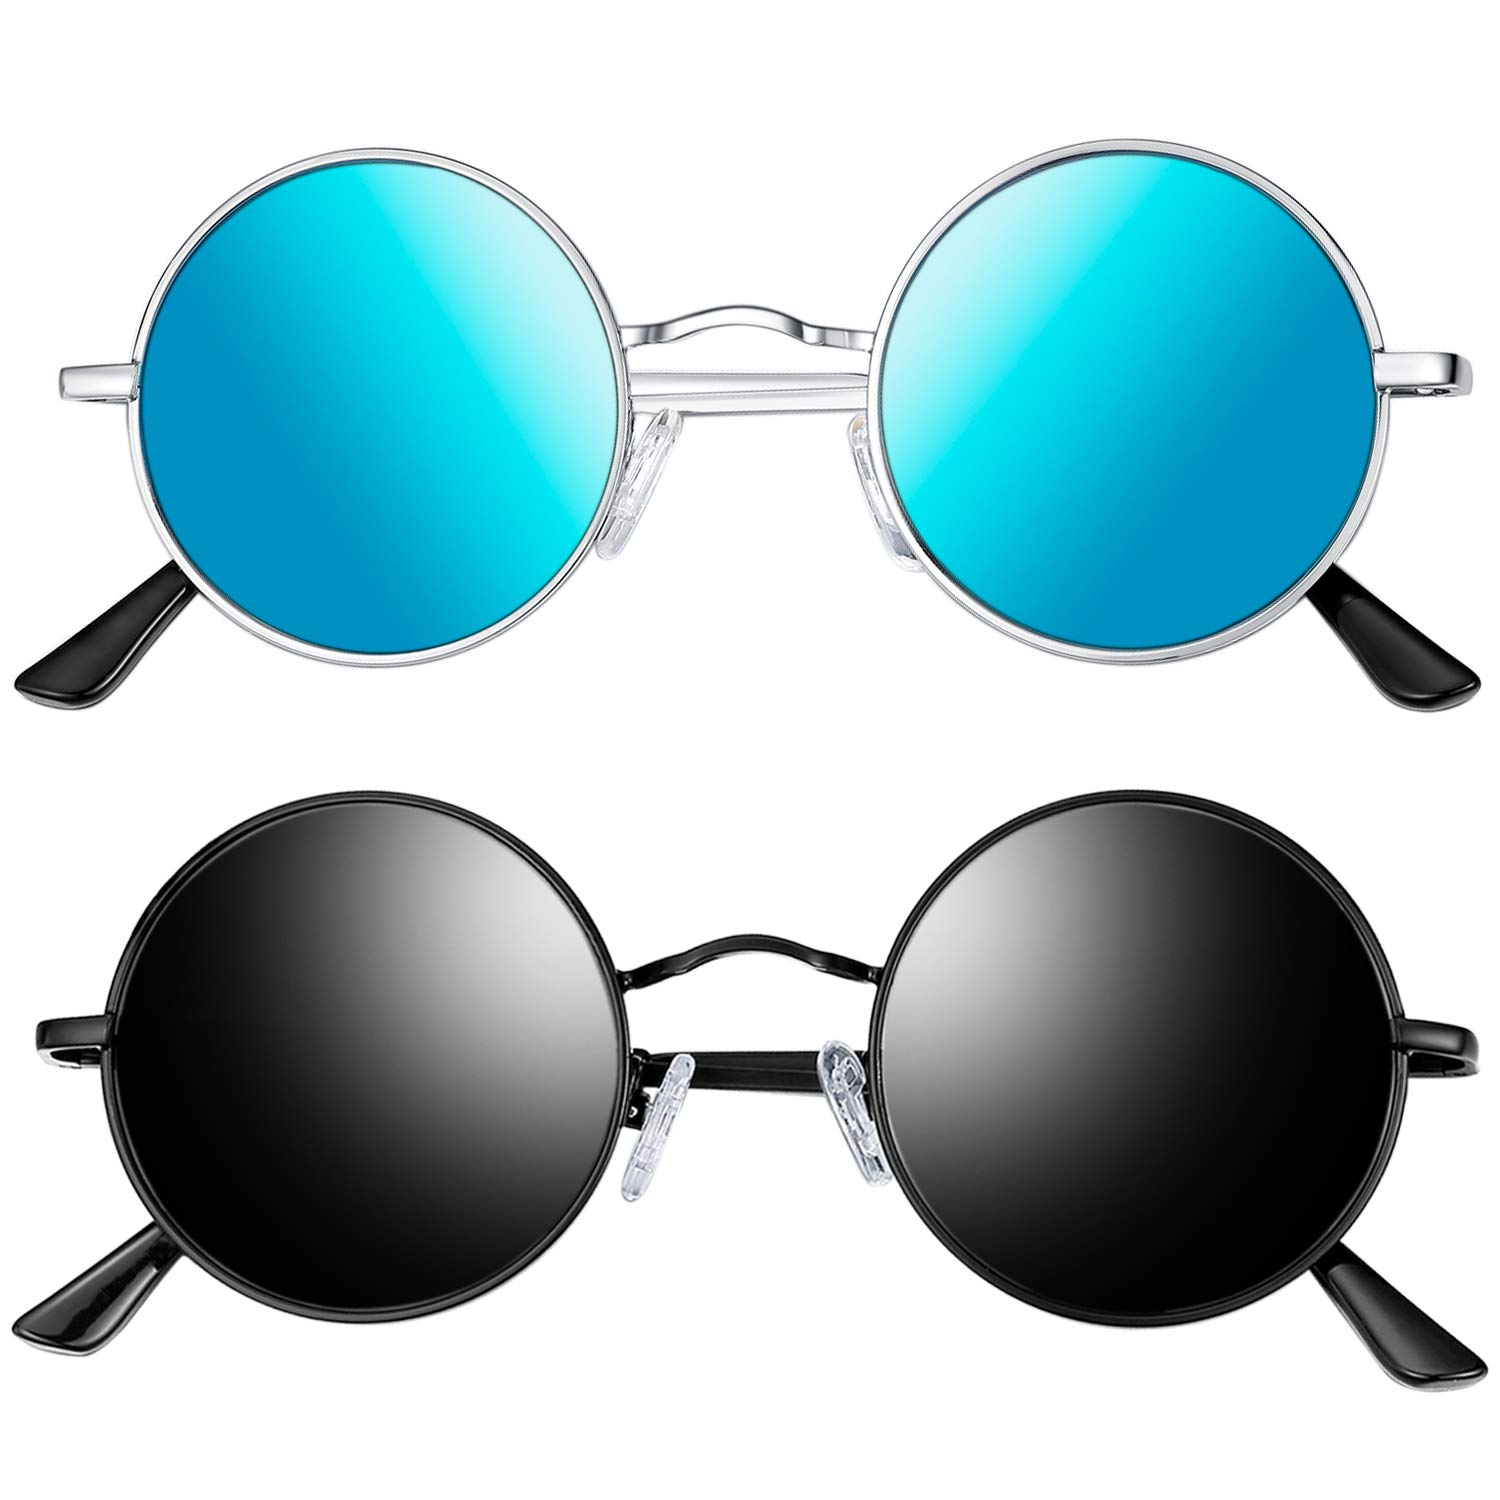 Joopin Polarized Round Sunglasses for Men and Women, 2 Pack Unisex Steampunk Sunglasses Hippie Sunglasses E4056 (Black+Blue)